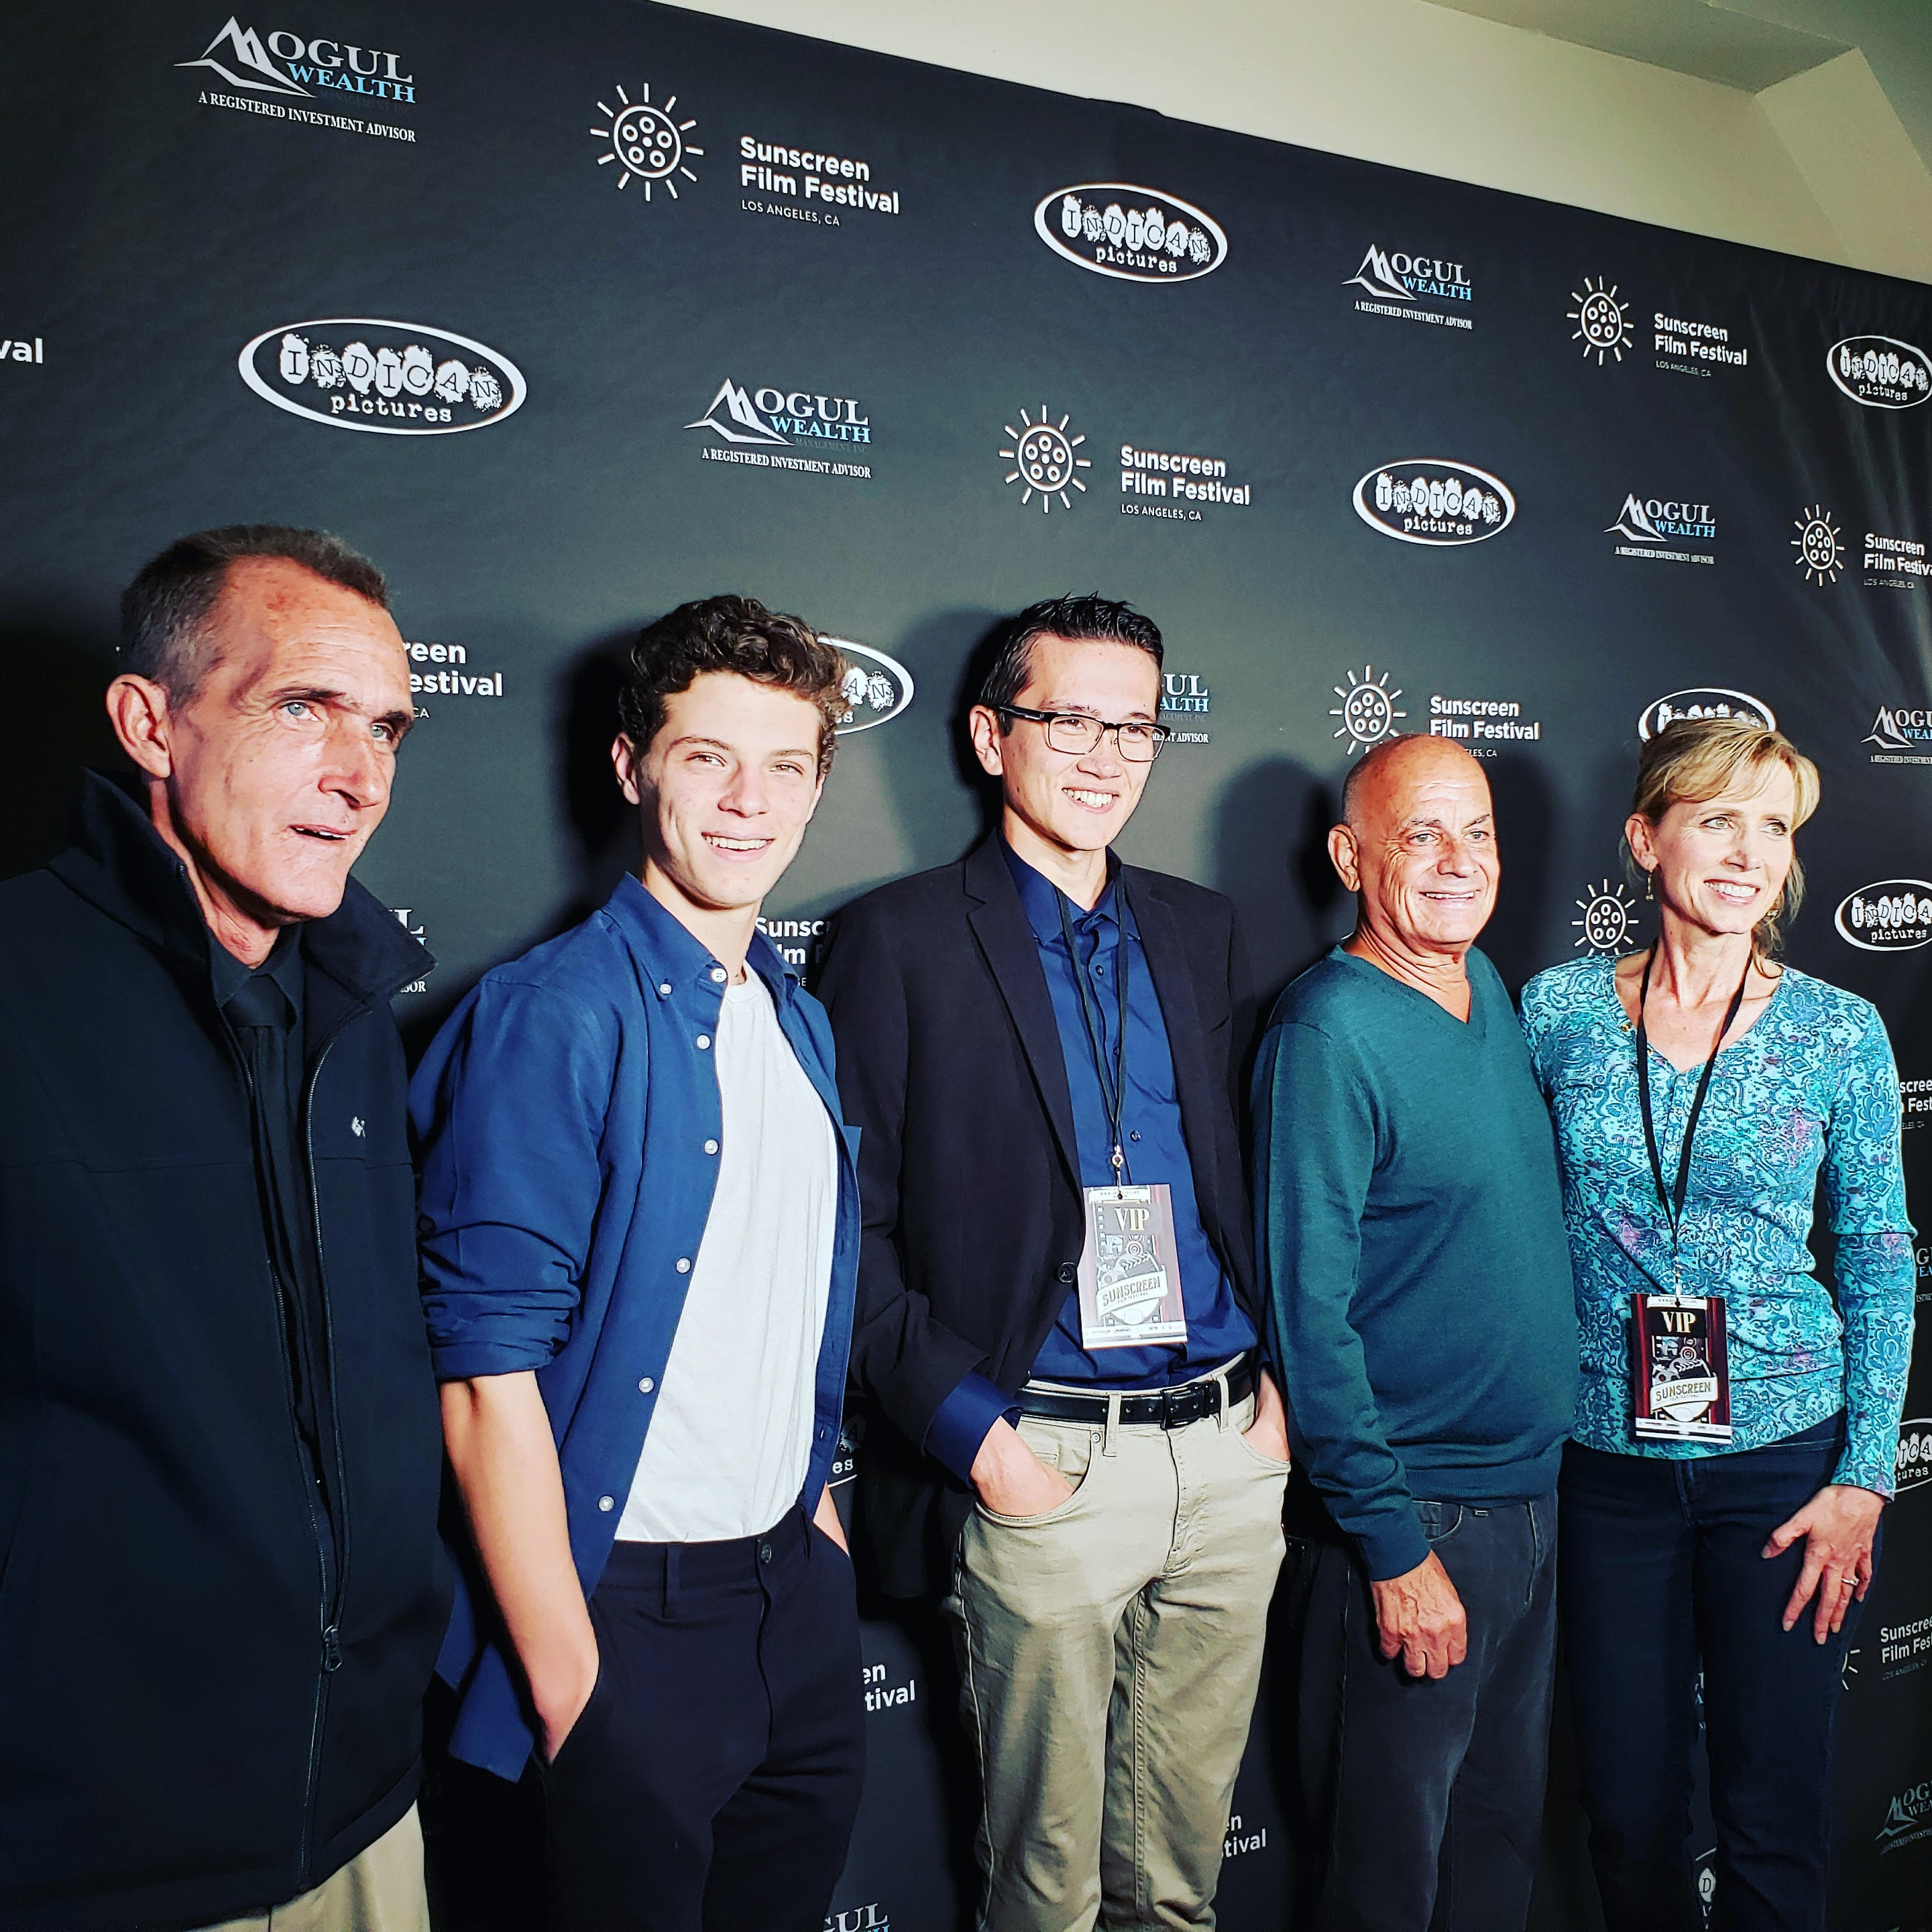 Sunscreen Film Festival West Premiere Cast for A Night In Jail